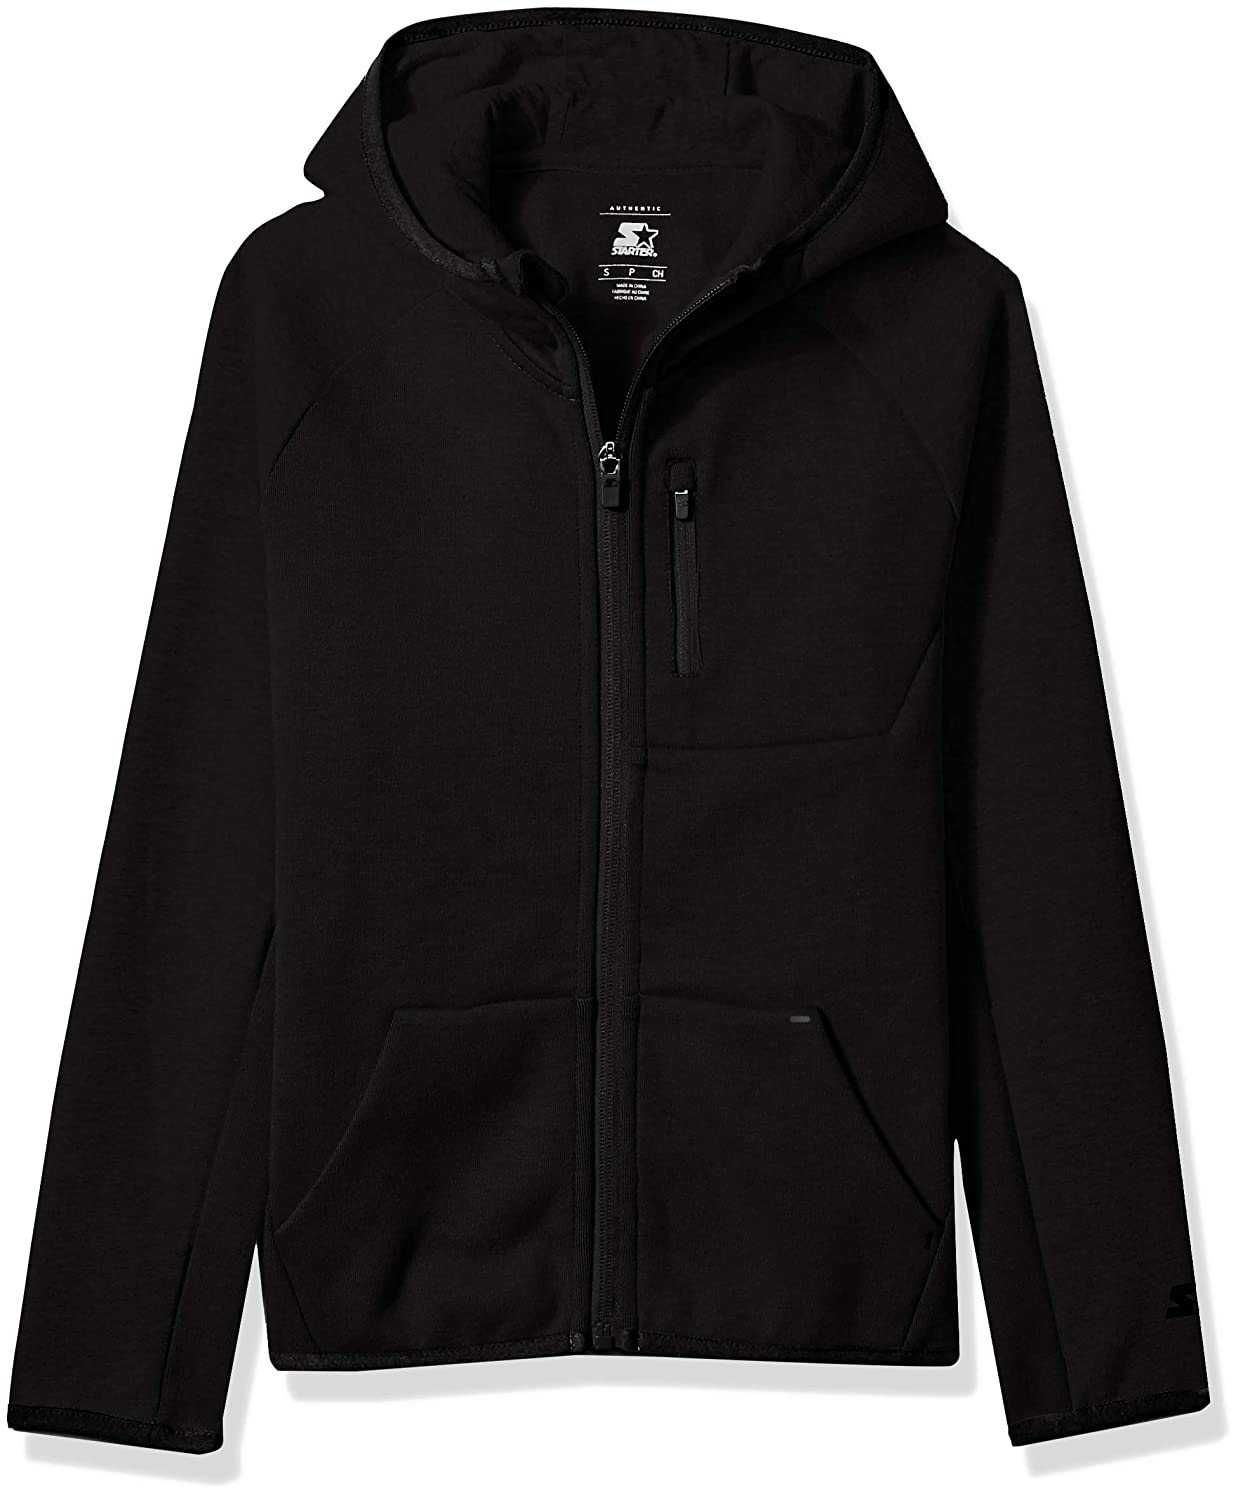 Starter Boys Double Knit Colorblocked Zip-Up Hoodie Exclusive